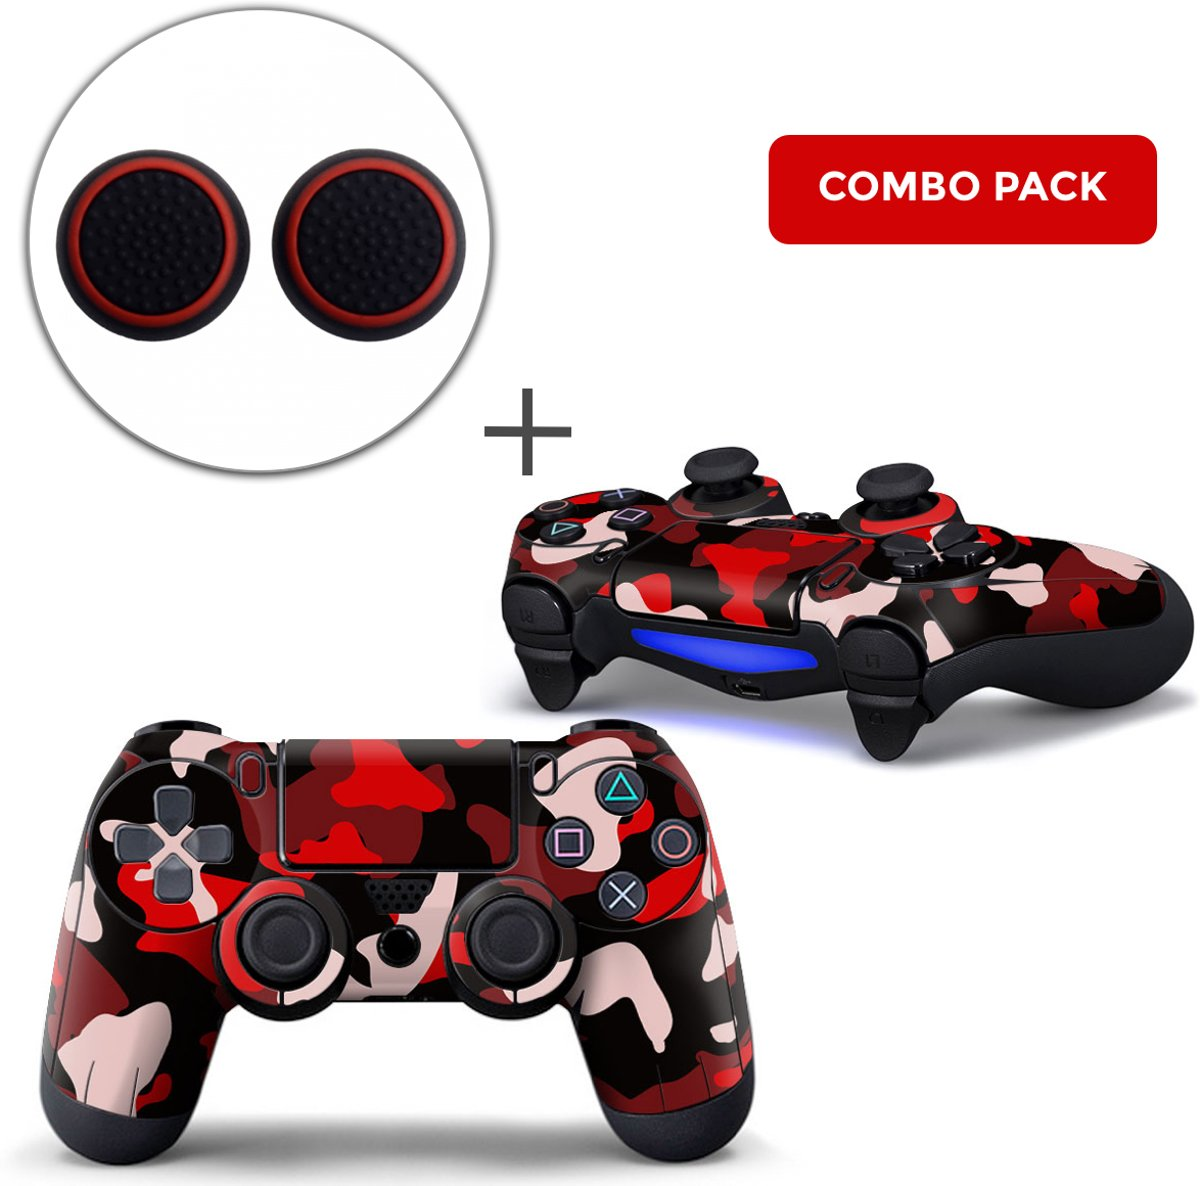 Army Camo / Rood Zwart Combo Pack - PS4 Controller Skins PlayStation Stickers + Thumb Grips